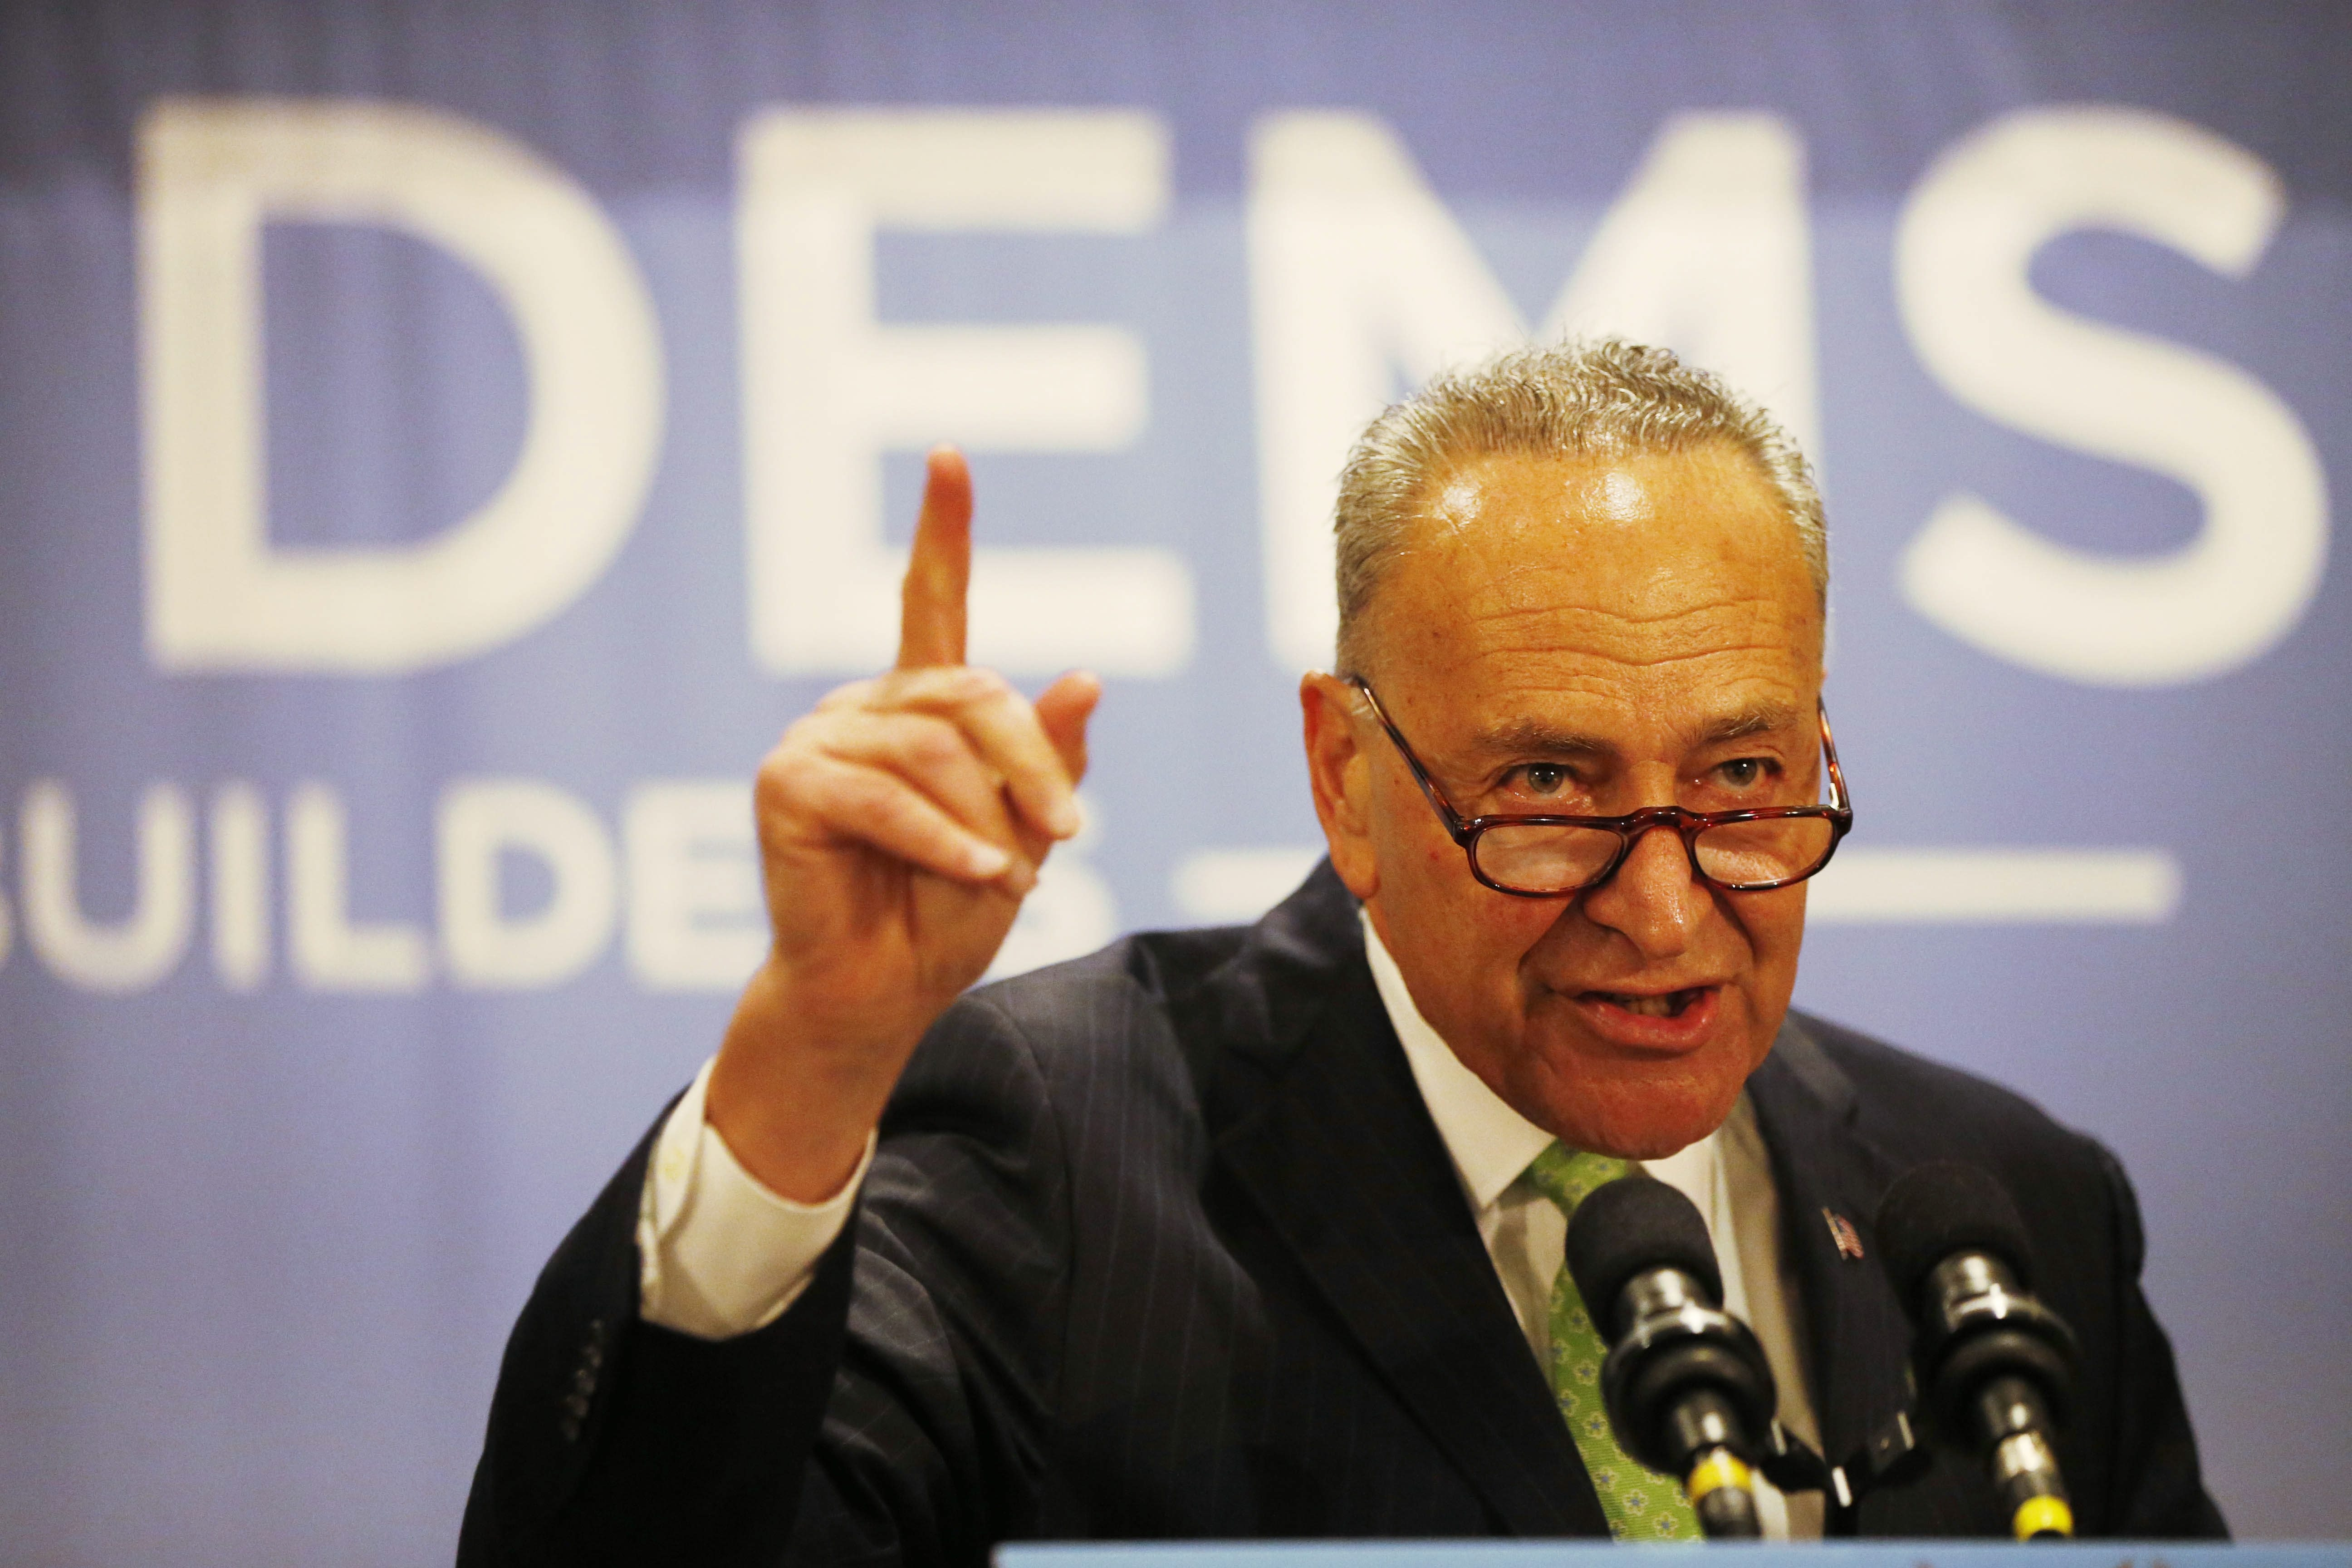 Derek Gee/Buffalo News  Sen. Charles Schumer, pictured here during the New York Democrat breakfast at the Loews Hotel in Philadelphia in July, said Monday that he recently suffered a bout of pneumonia.